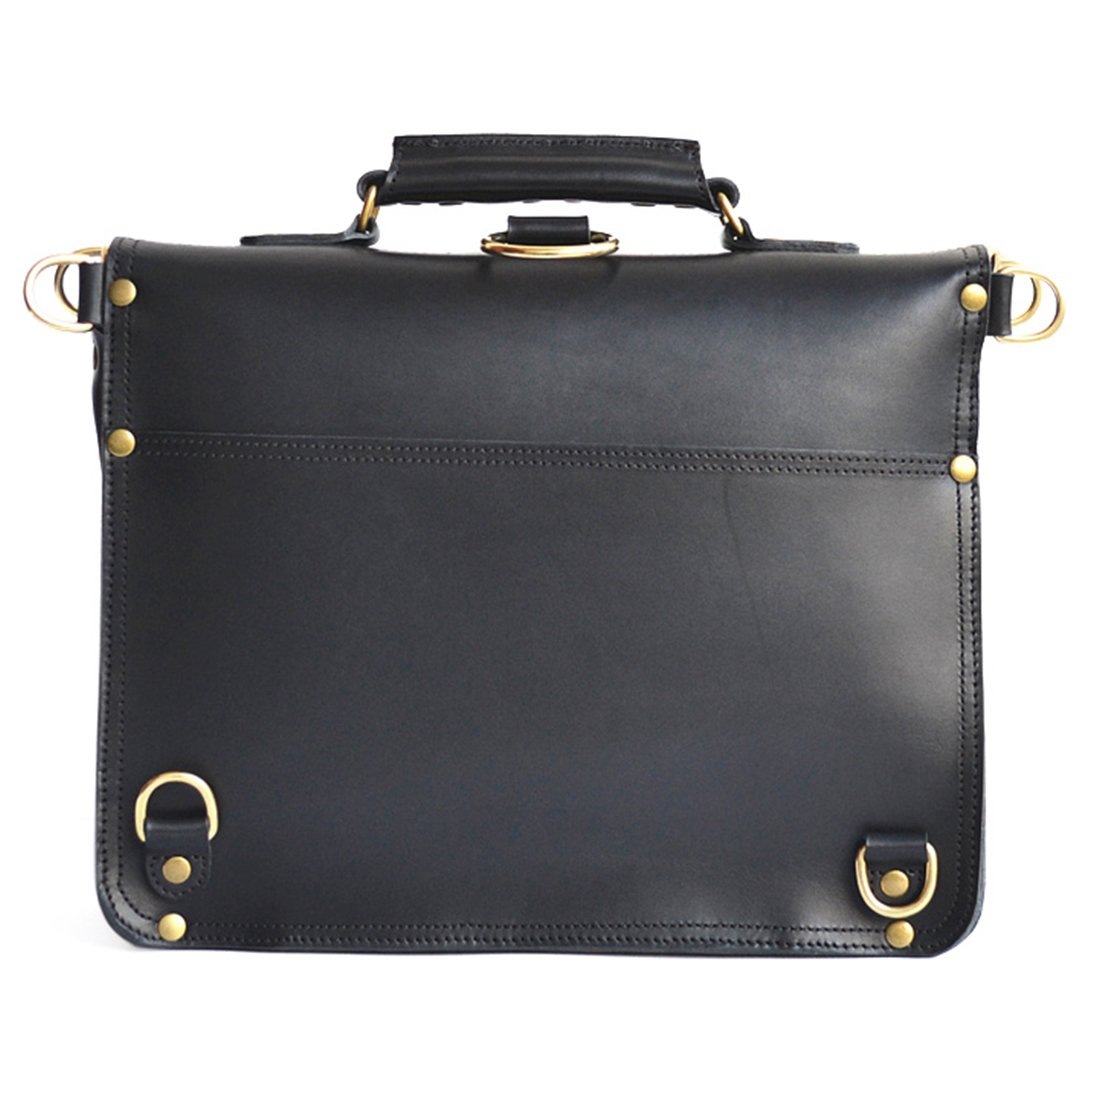 17, Black Solid Brass Hardware Full Grain Leather Marlondo Leather Thin Briefcase